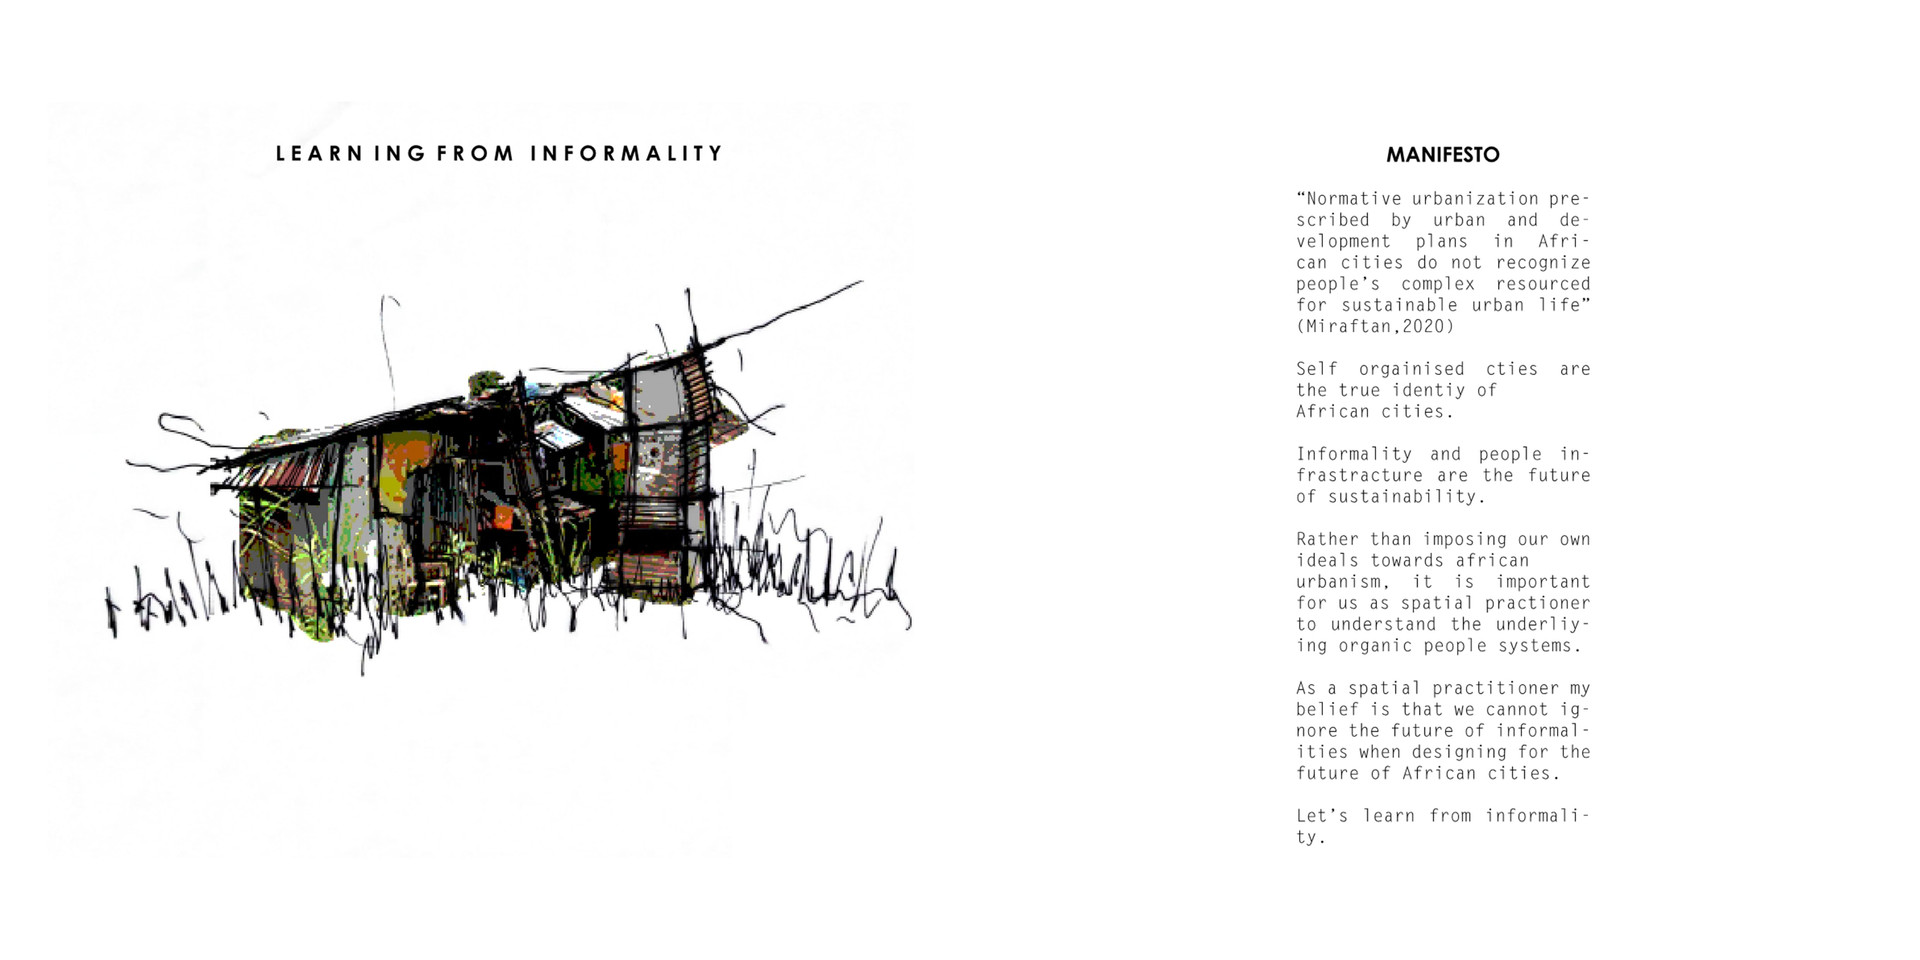 LEARNING FROM INFORMALITY, Lesolle, L. Unit 15X. 2020.